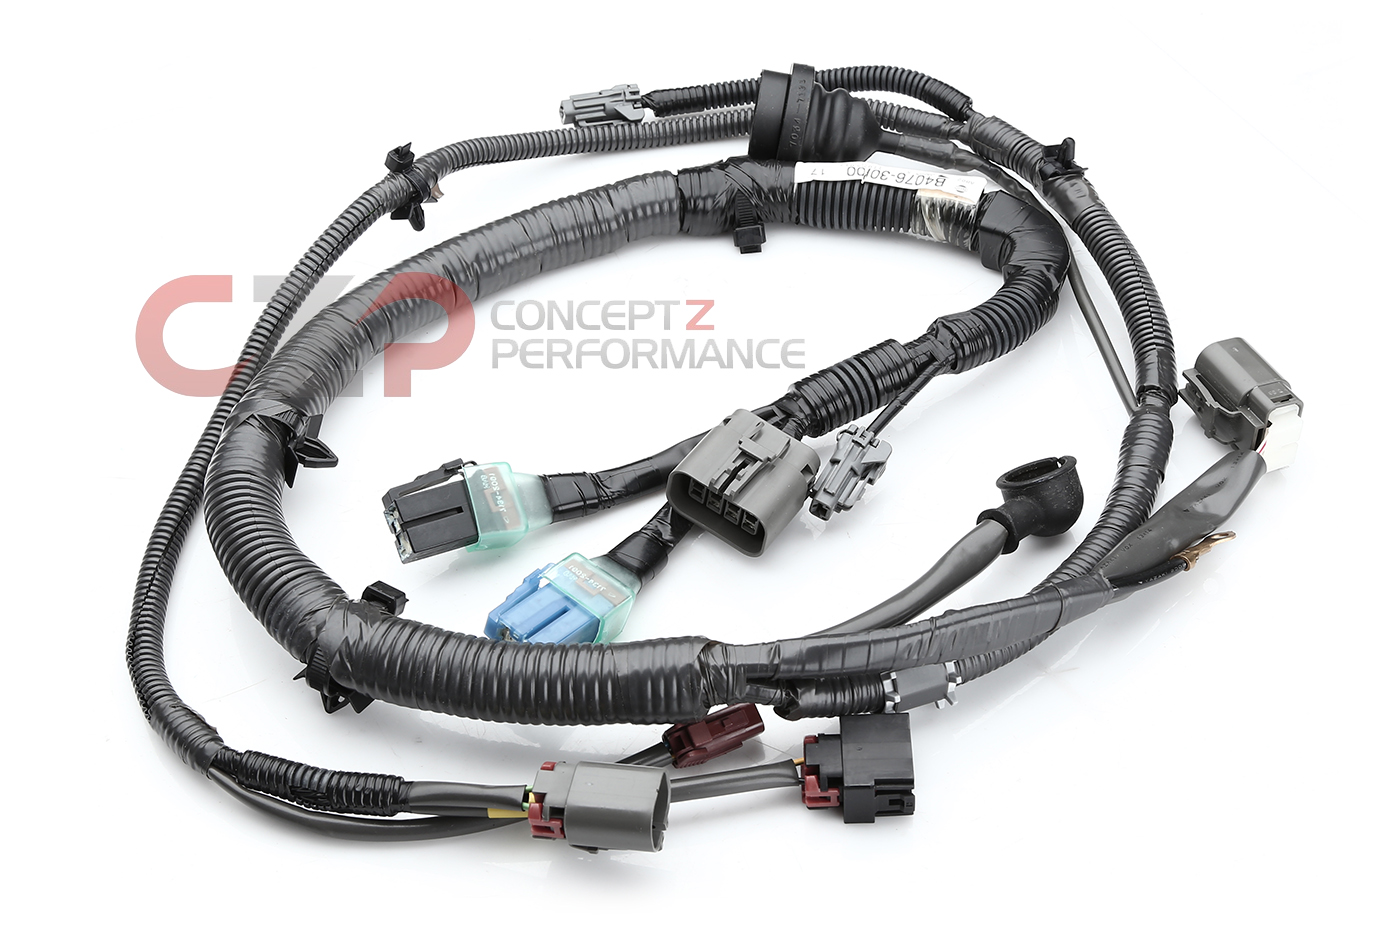 1990 Nissan 300zx Wiring Harness Diagram Free For You 1997 Jeep Wrangler Alternator Engine Image Color